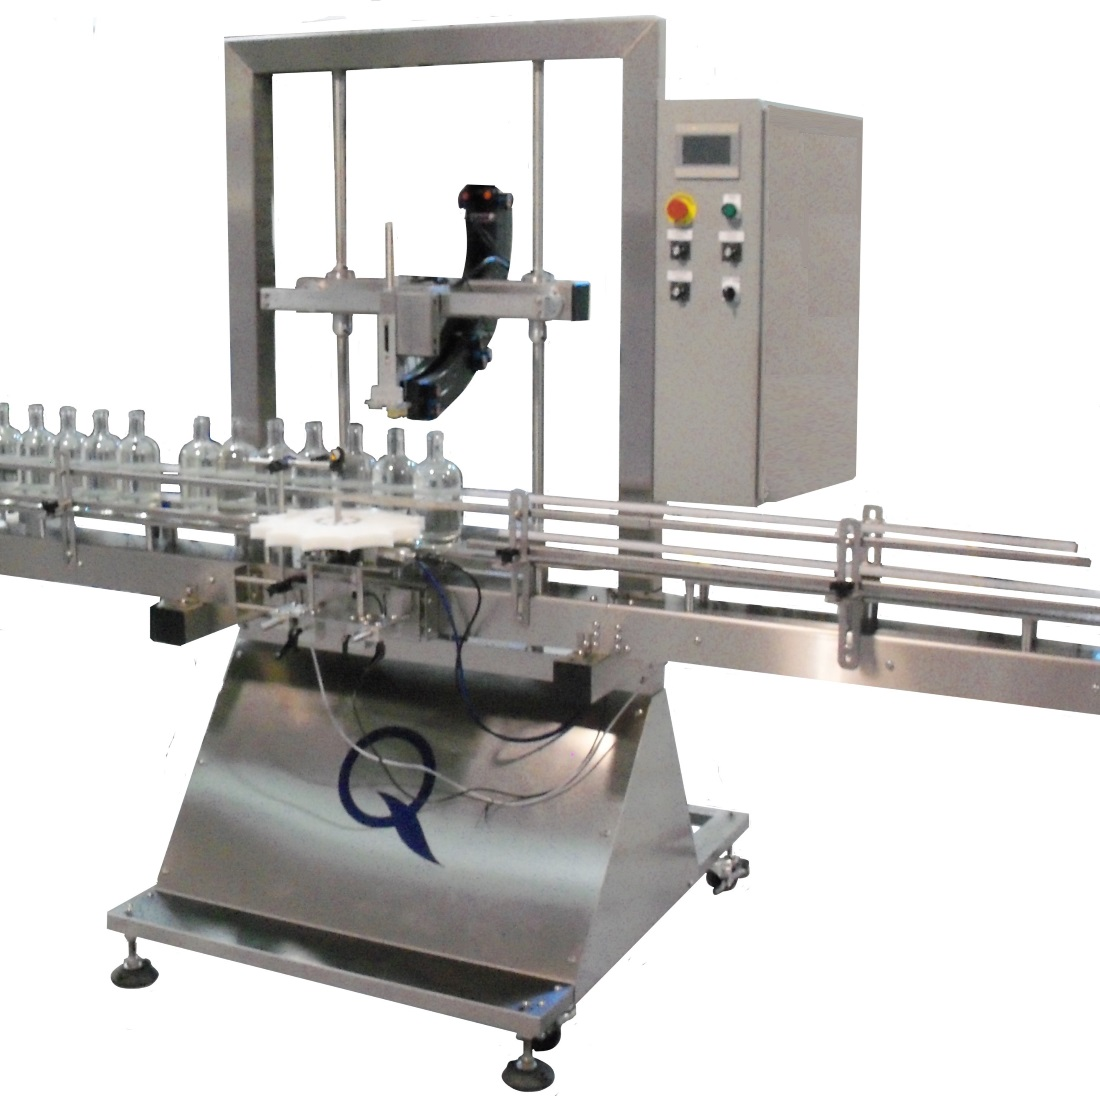 Semi-Automatic Full Frame Bottle Corker for Distilled Spirits